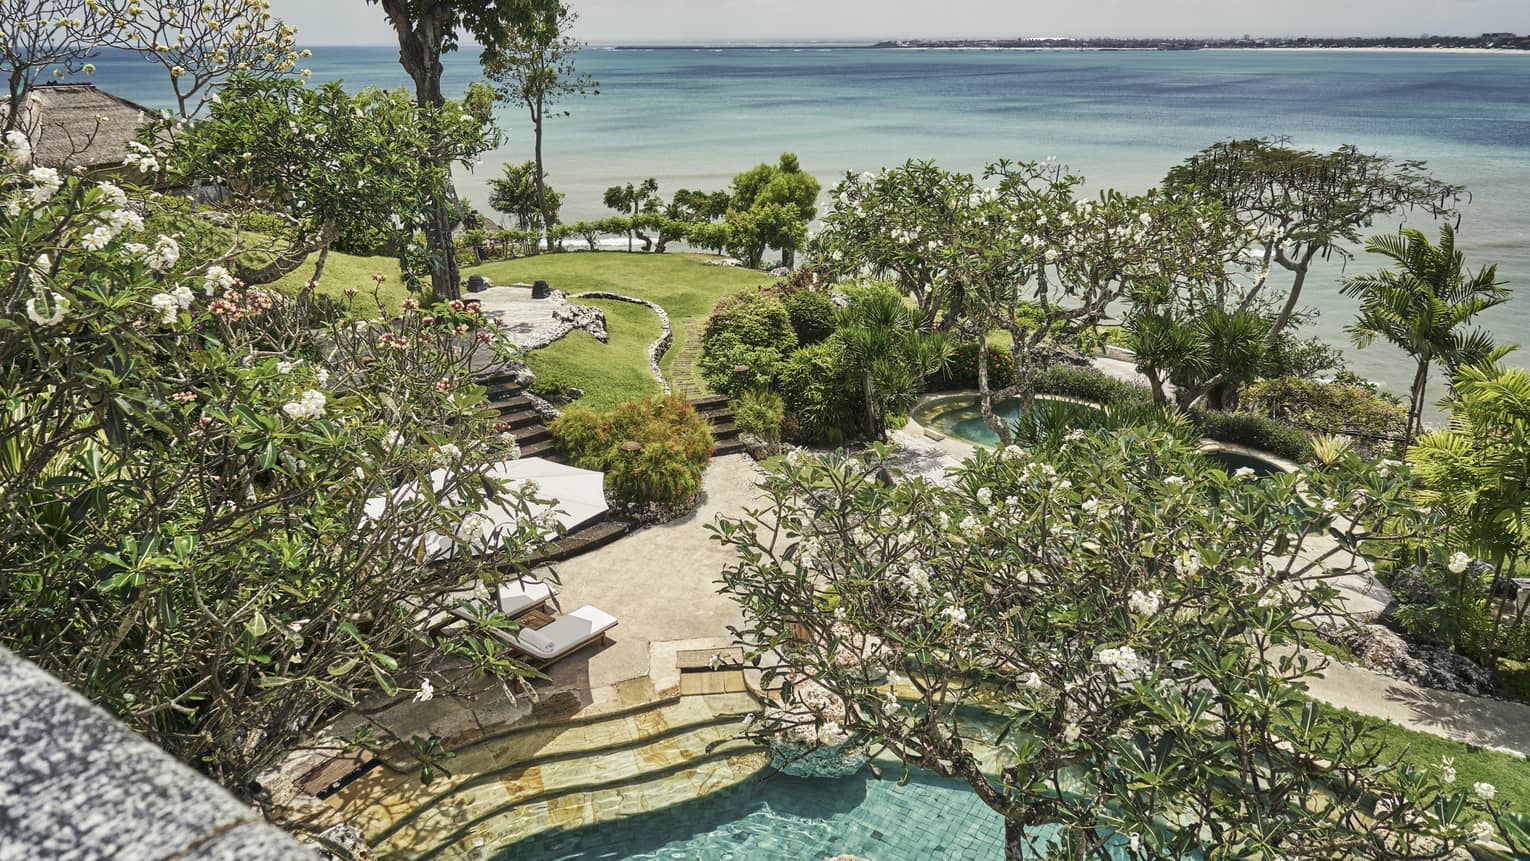 Aerial view through trees of resort stone patio and steps to swimming pool, green lawn, trees and blue ocean